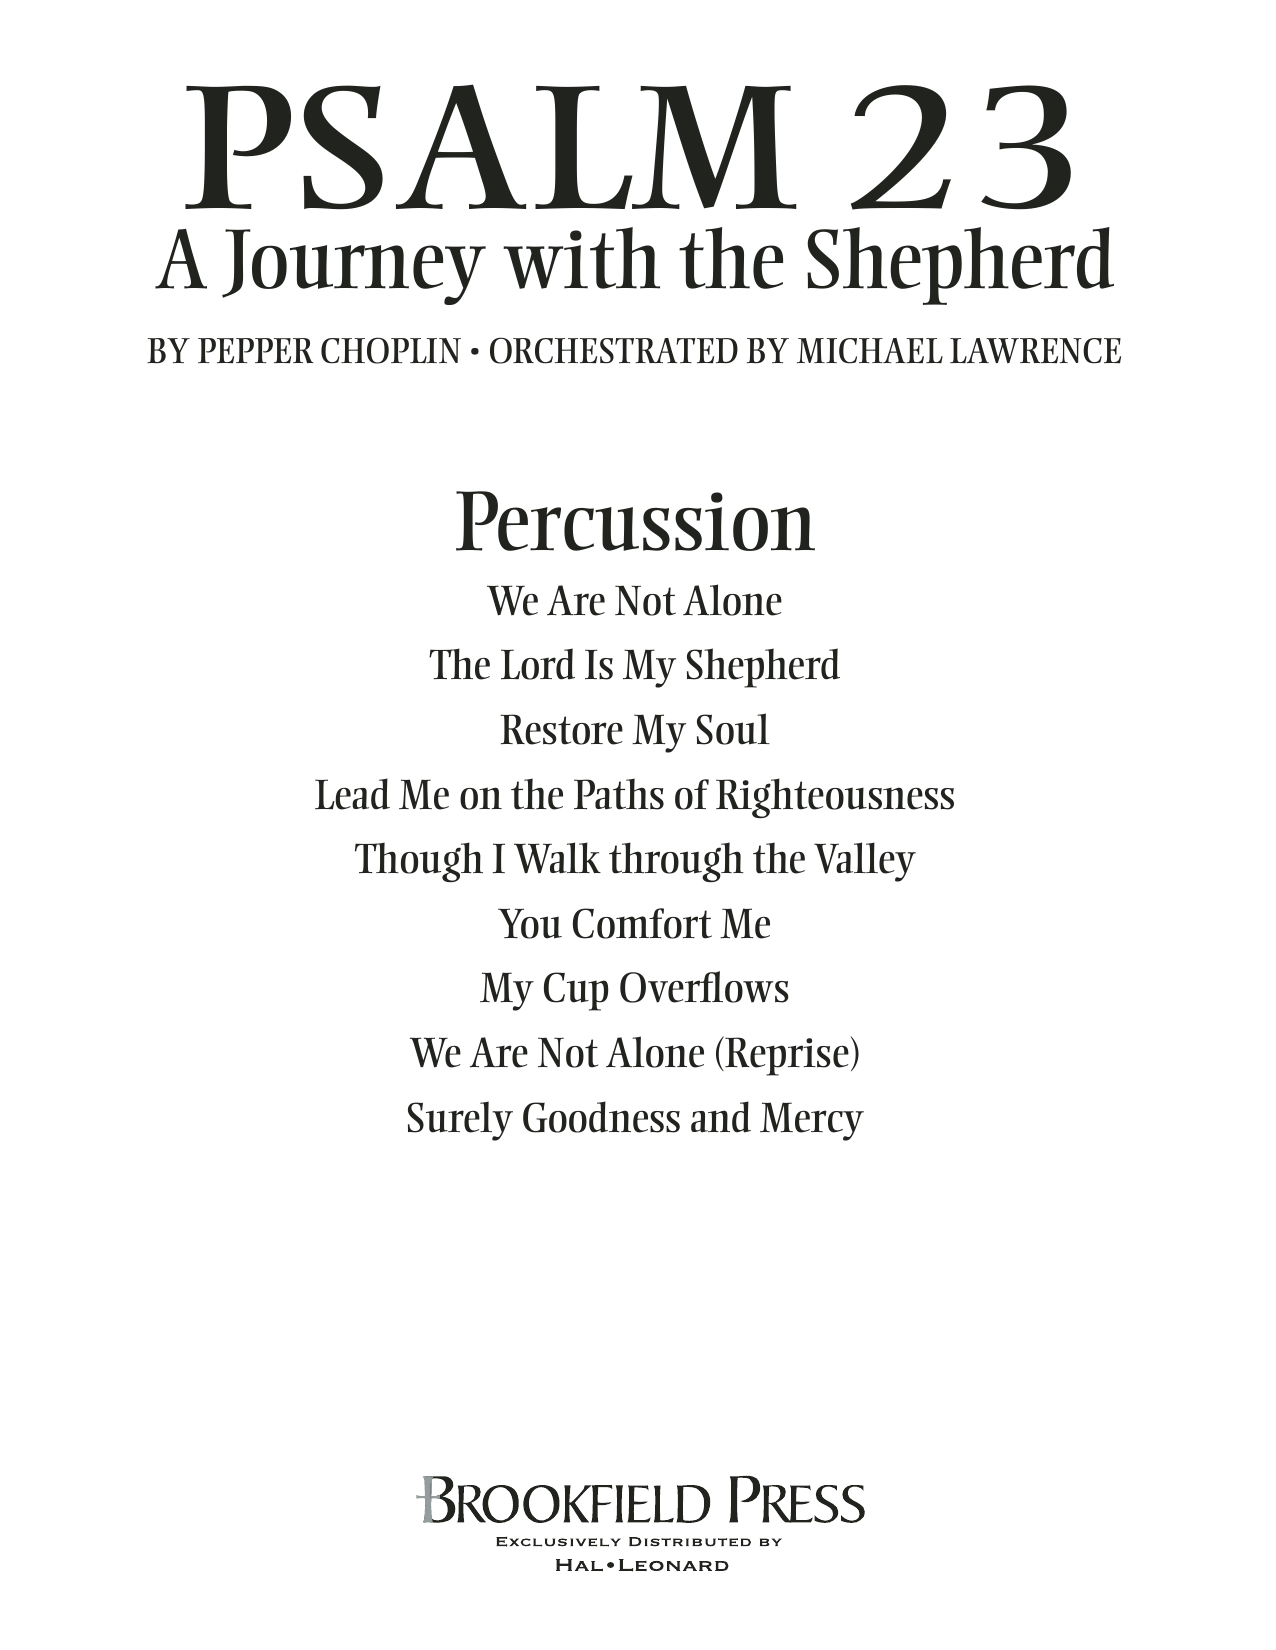 Psalm 23 - A Journey With The Shepherd - Percussion Sheet Music